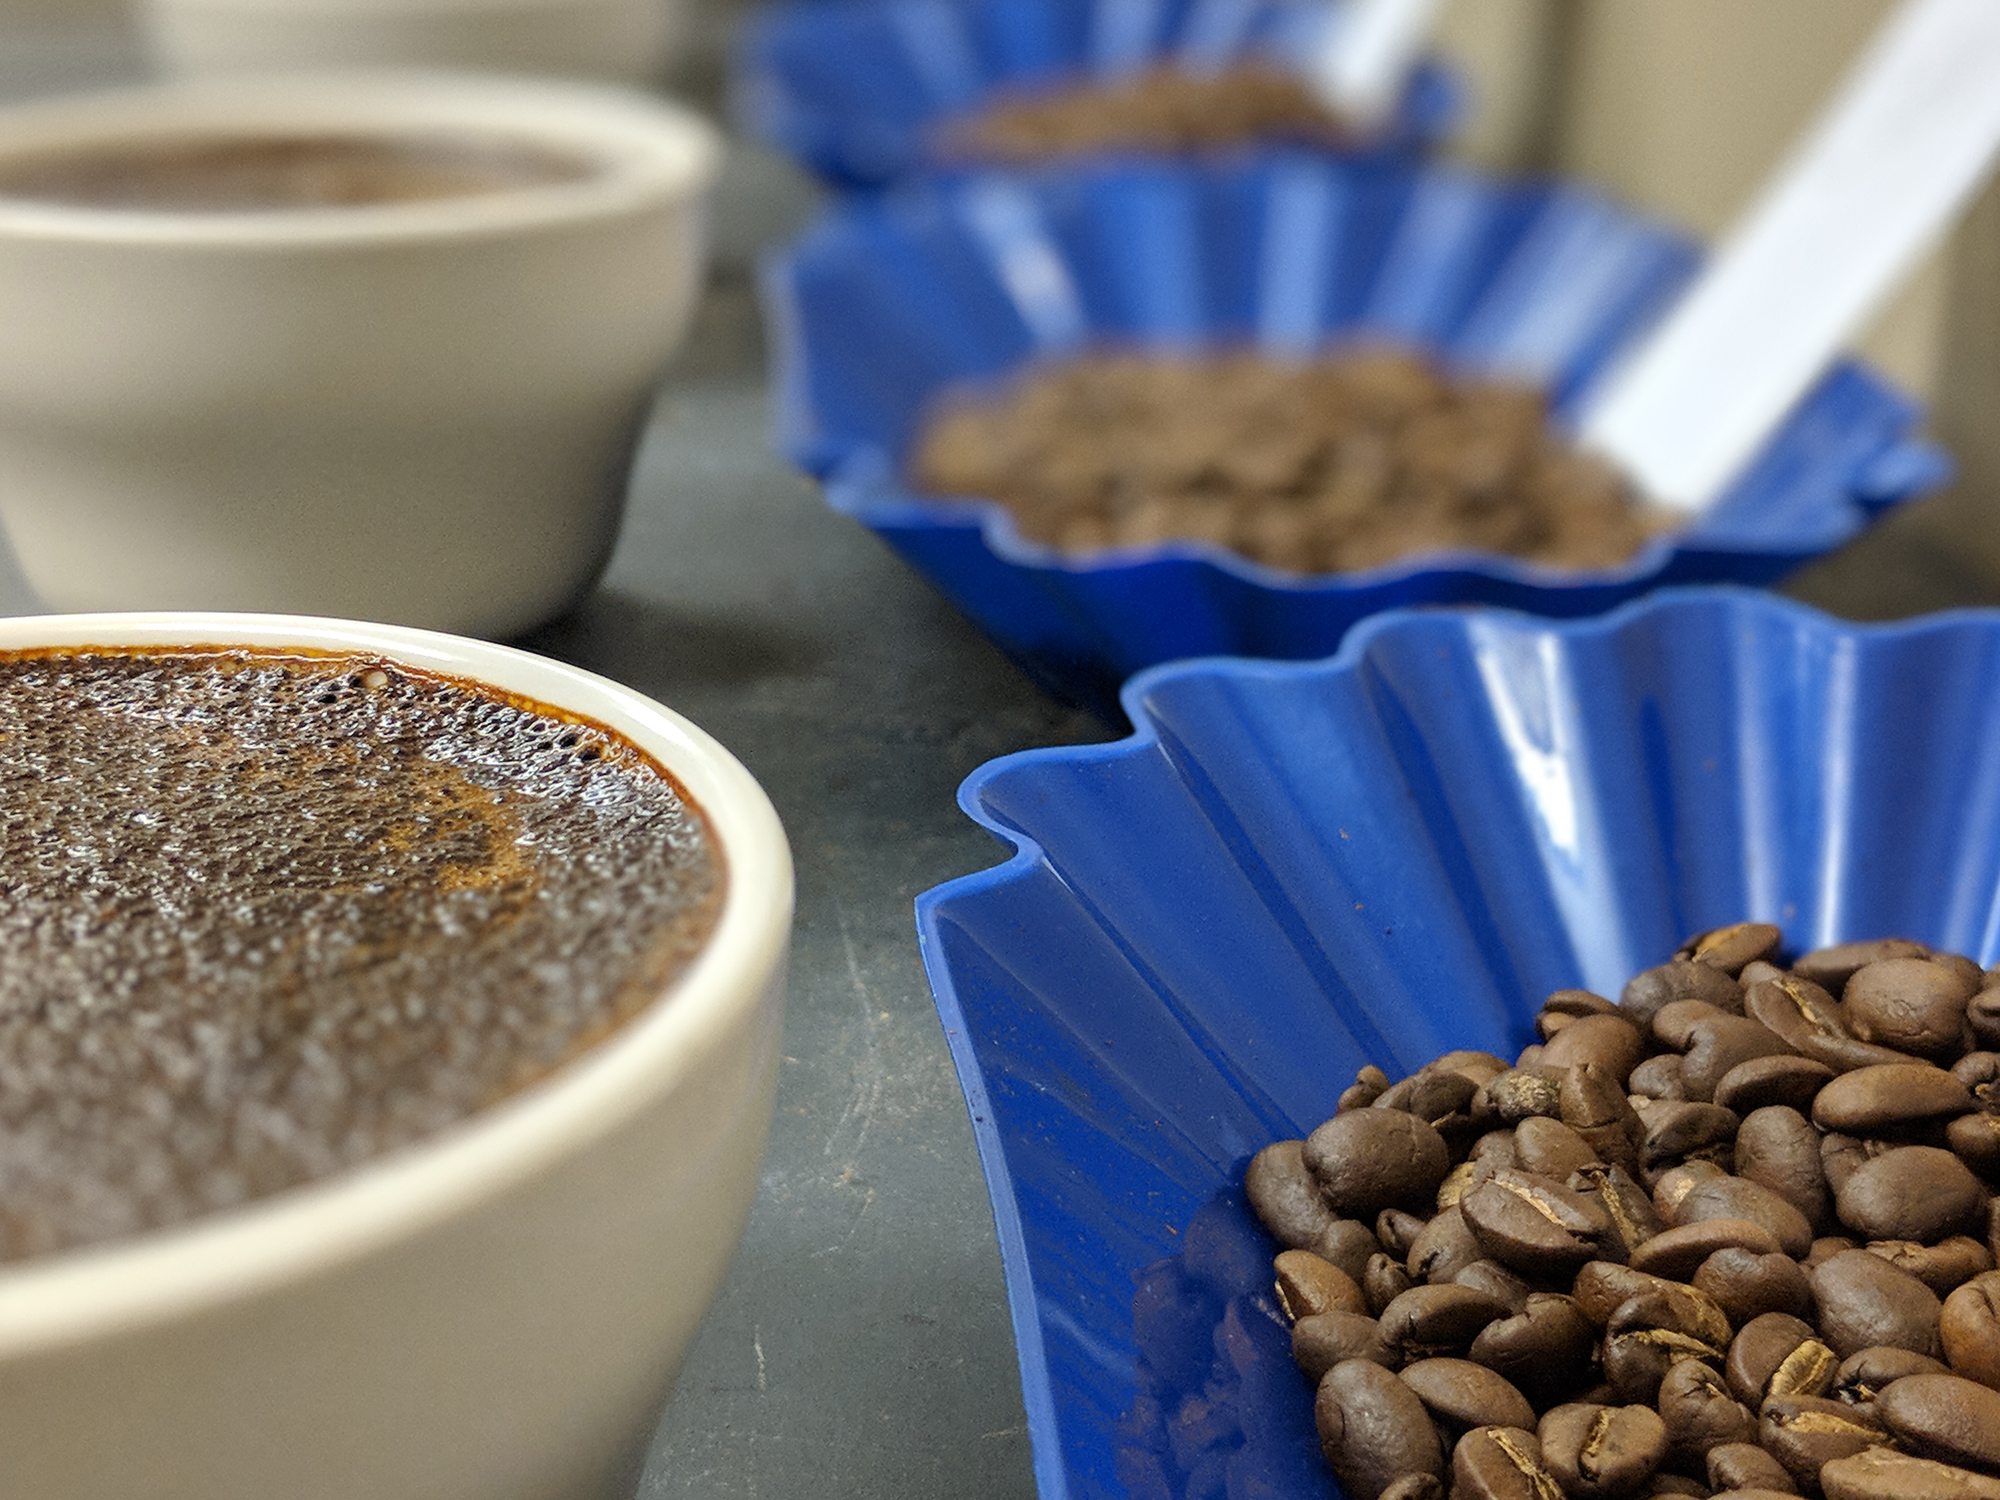 """Cupping & Matching - When you're switching from your current roaster to Copper Moon, we understand the importance of a smooth transition. Our professional team of coffee tasters will cup and match your coffees perfectly.Once your coffees have been matched, we """"lock-in"""" your formula and it won't change. You'll get consistent coffee on every order."""